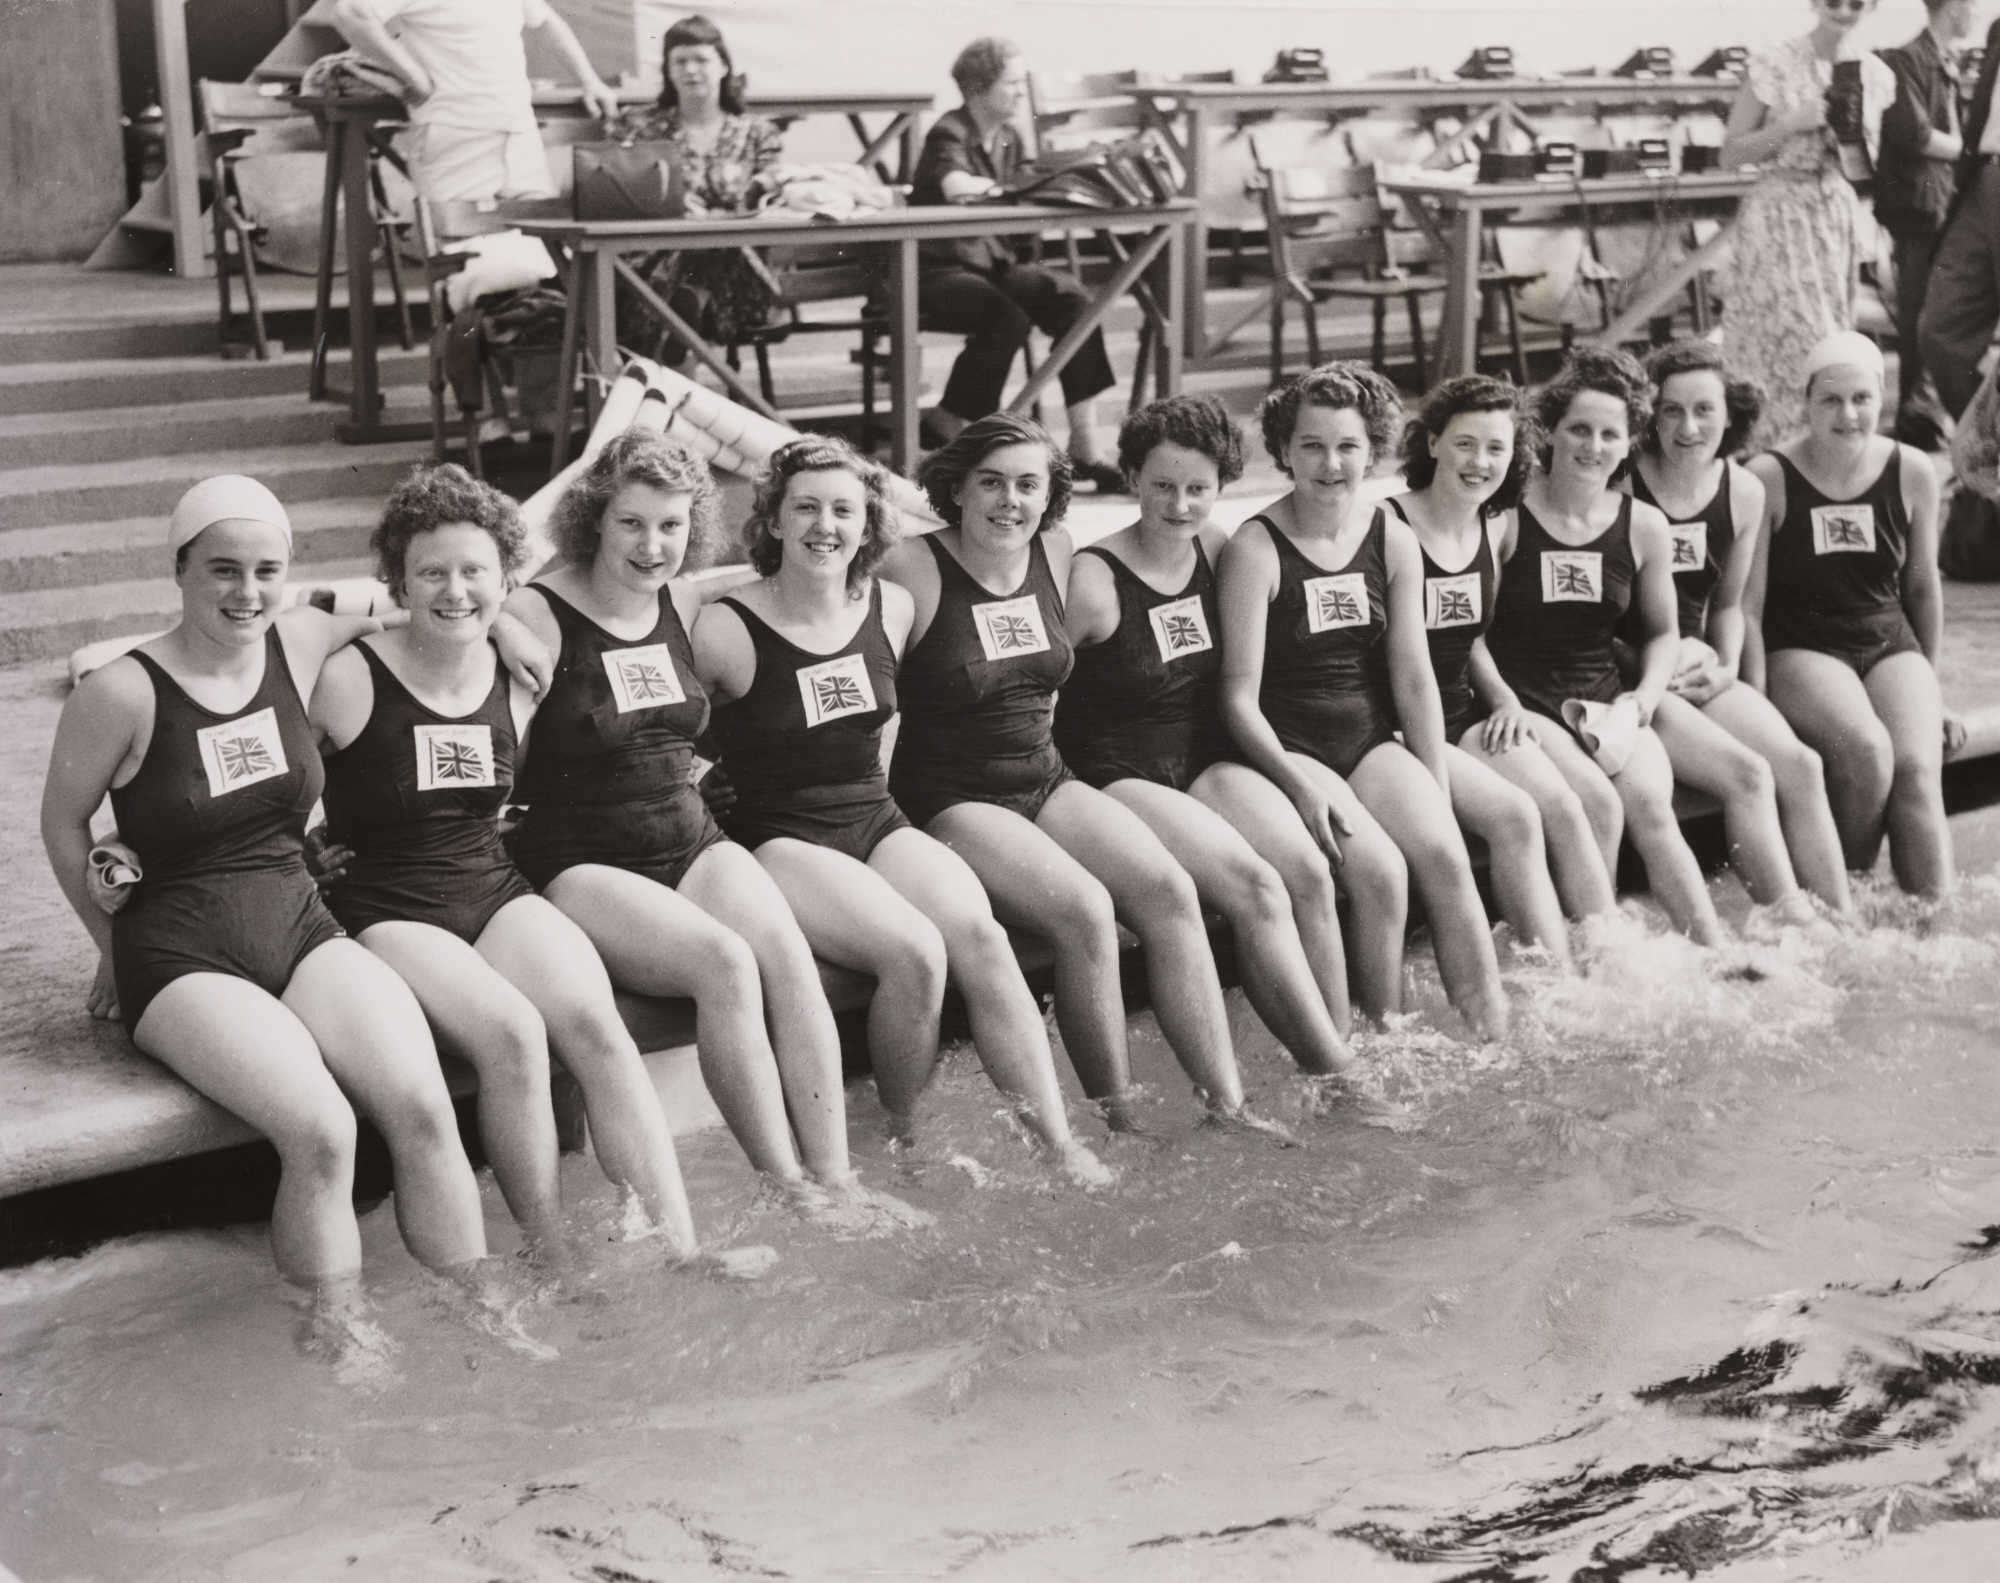 Filebritish Womens Olympic Swimming Team, London, 1948Jpg - Wikimedia Commons-9105